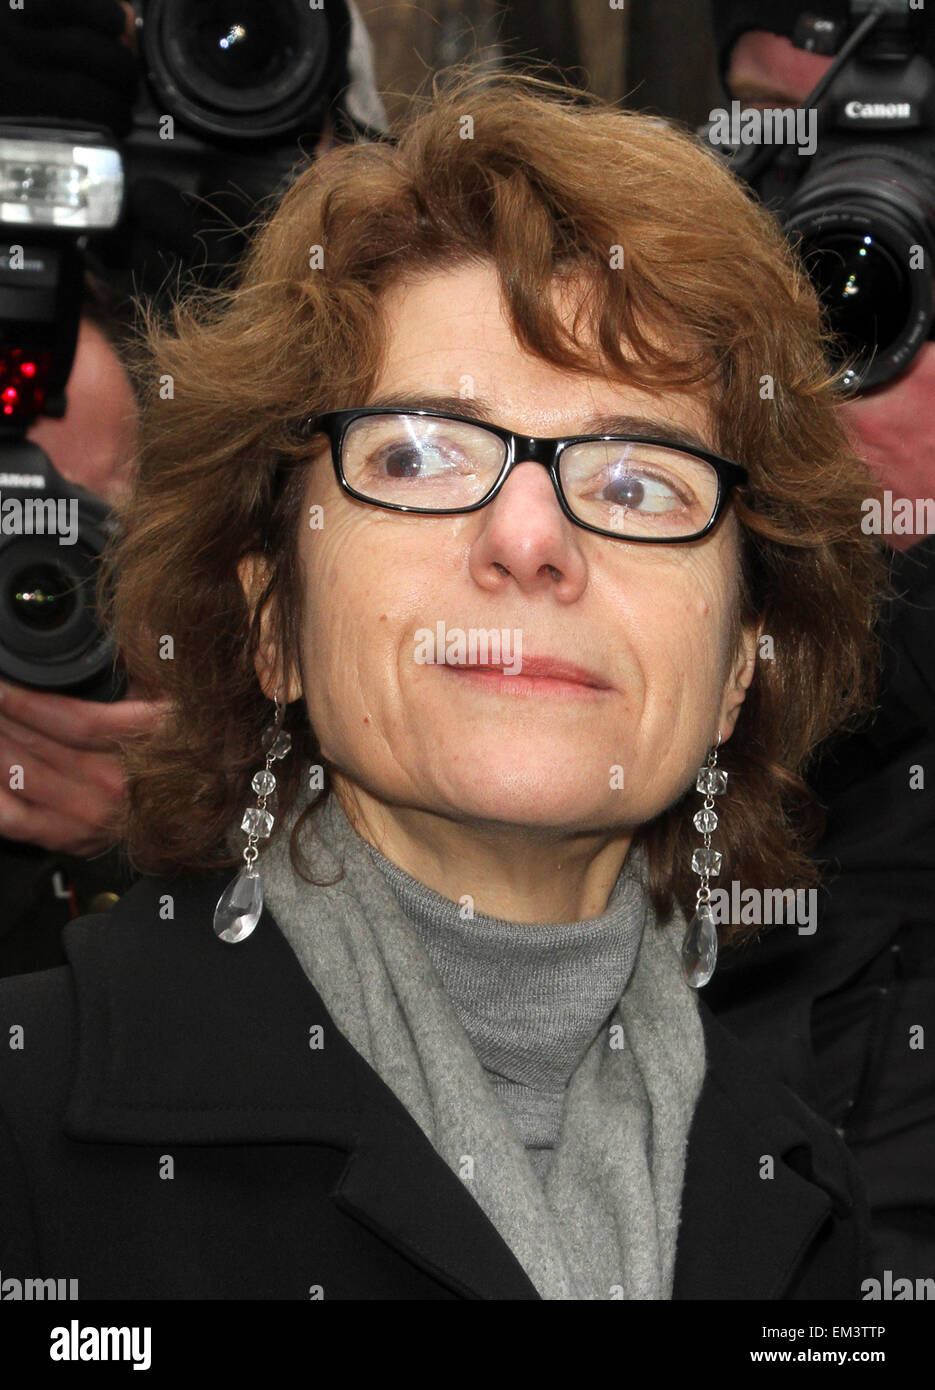 11.MARCH.2013. LONDON  CHRIS HUHNE AND VICKY PRYCE ARRIVE AT HOLLOWAY PRISON IN SOUTHWARK WHERE THEY WILL BE JAILED - Stock Image